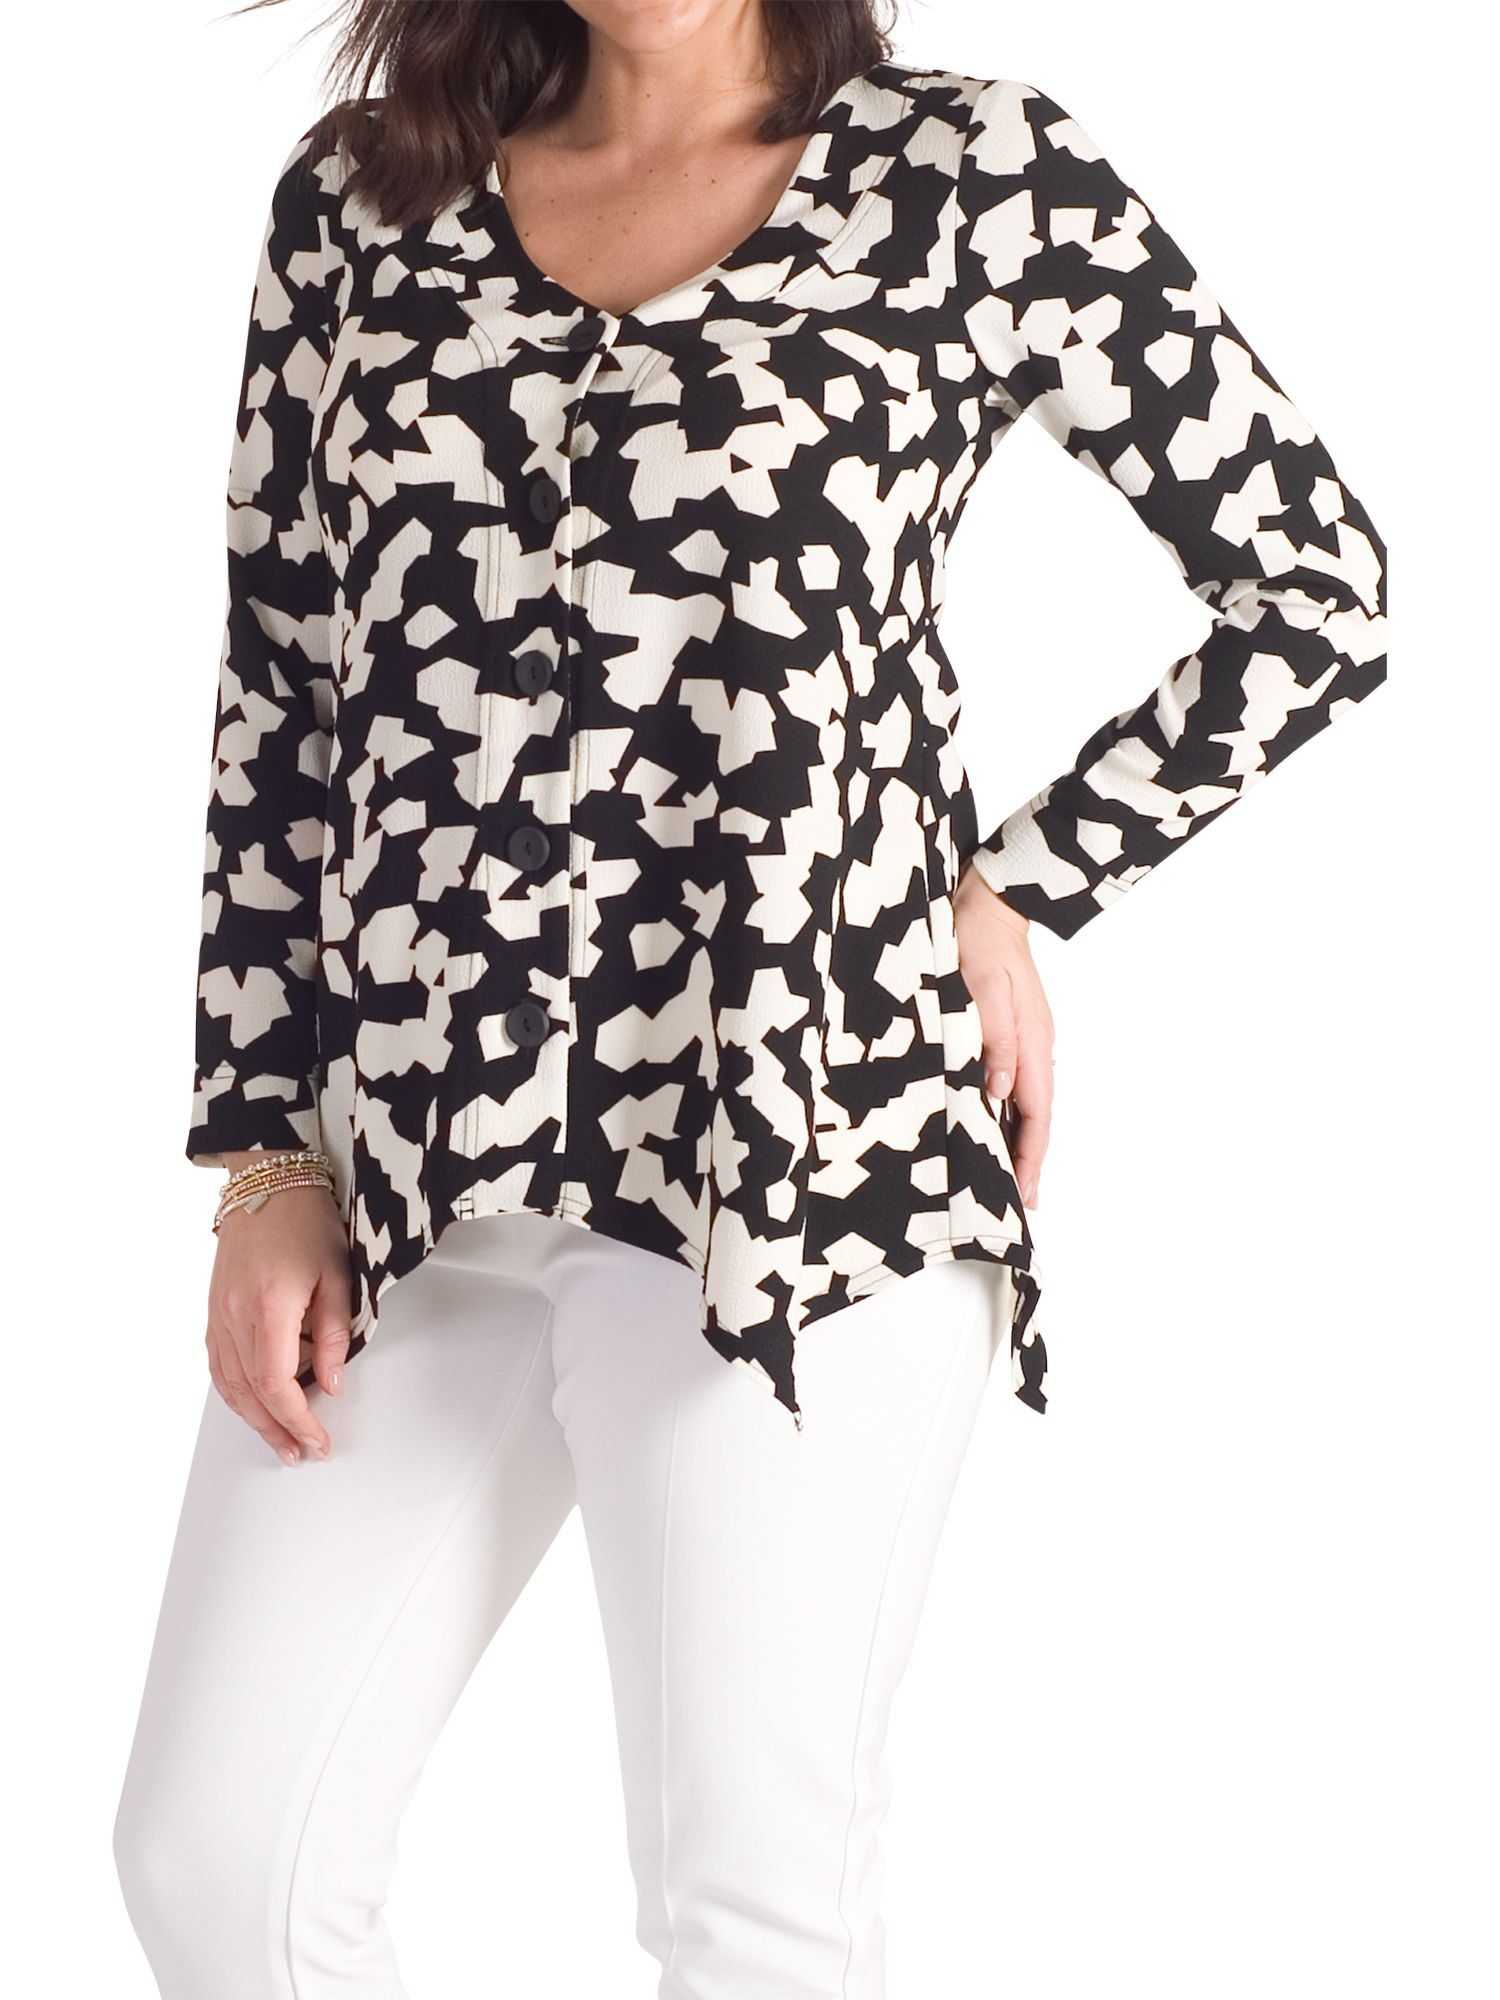 Chesca Chesca Abstract Jigsaw Jacket, Black/Ivory